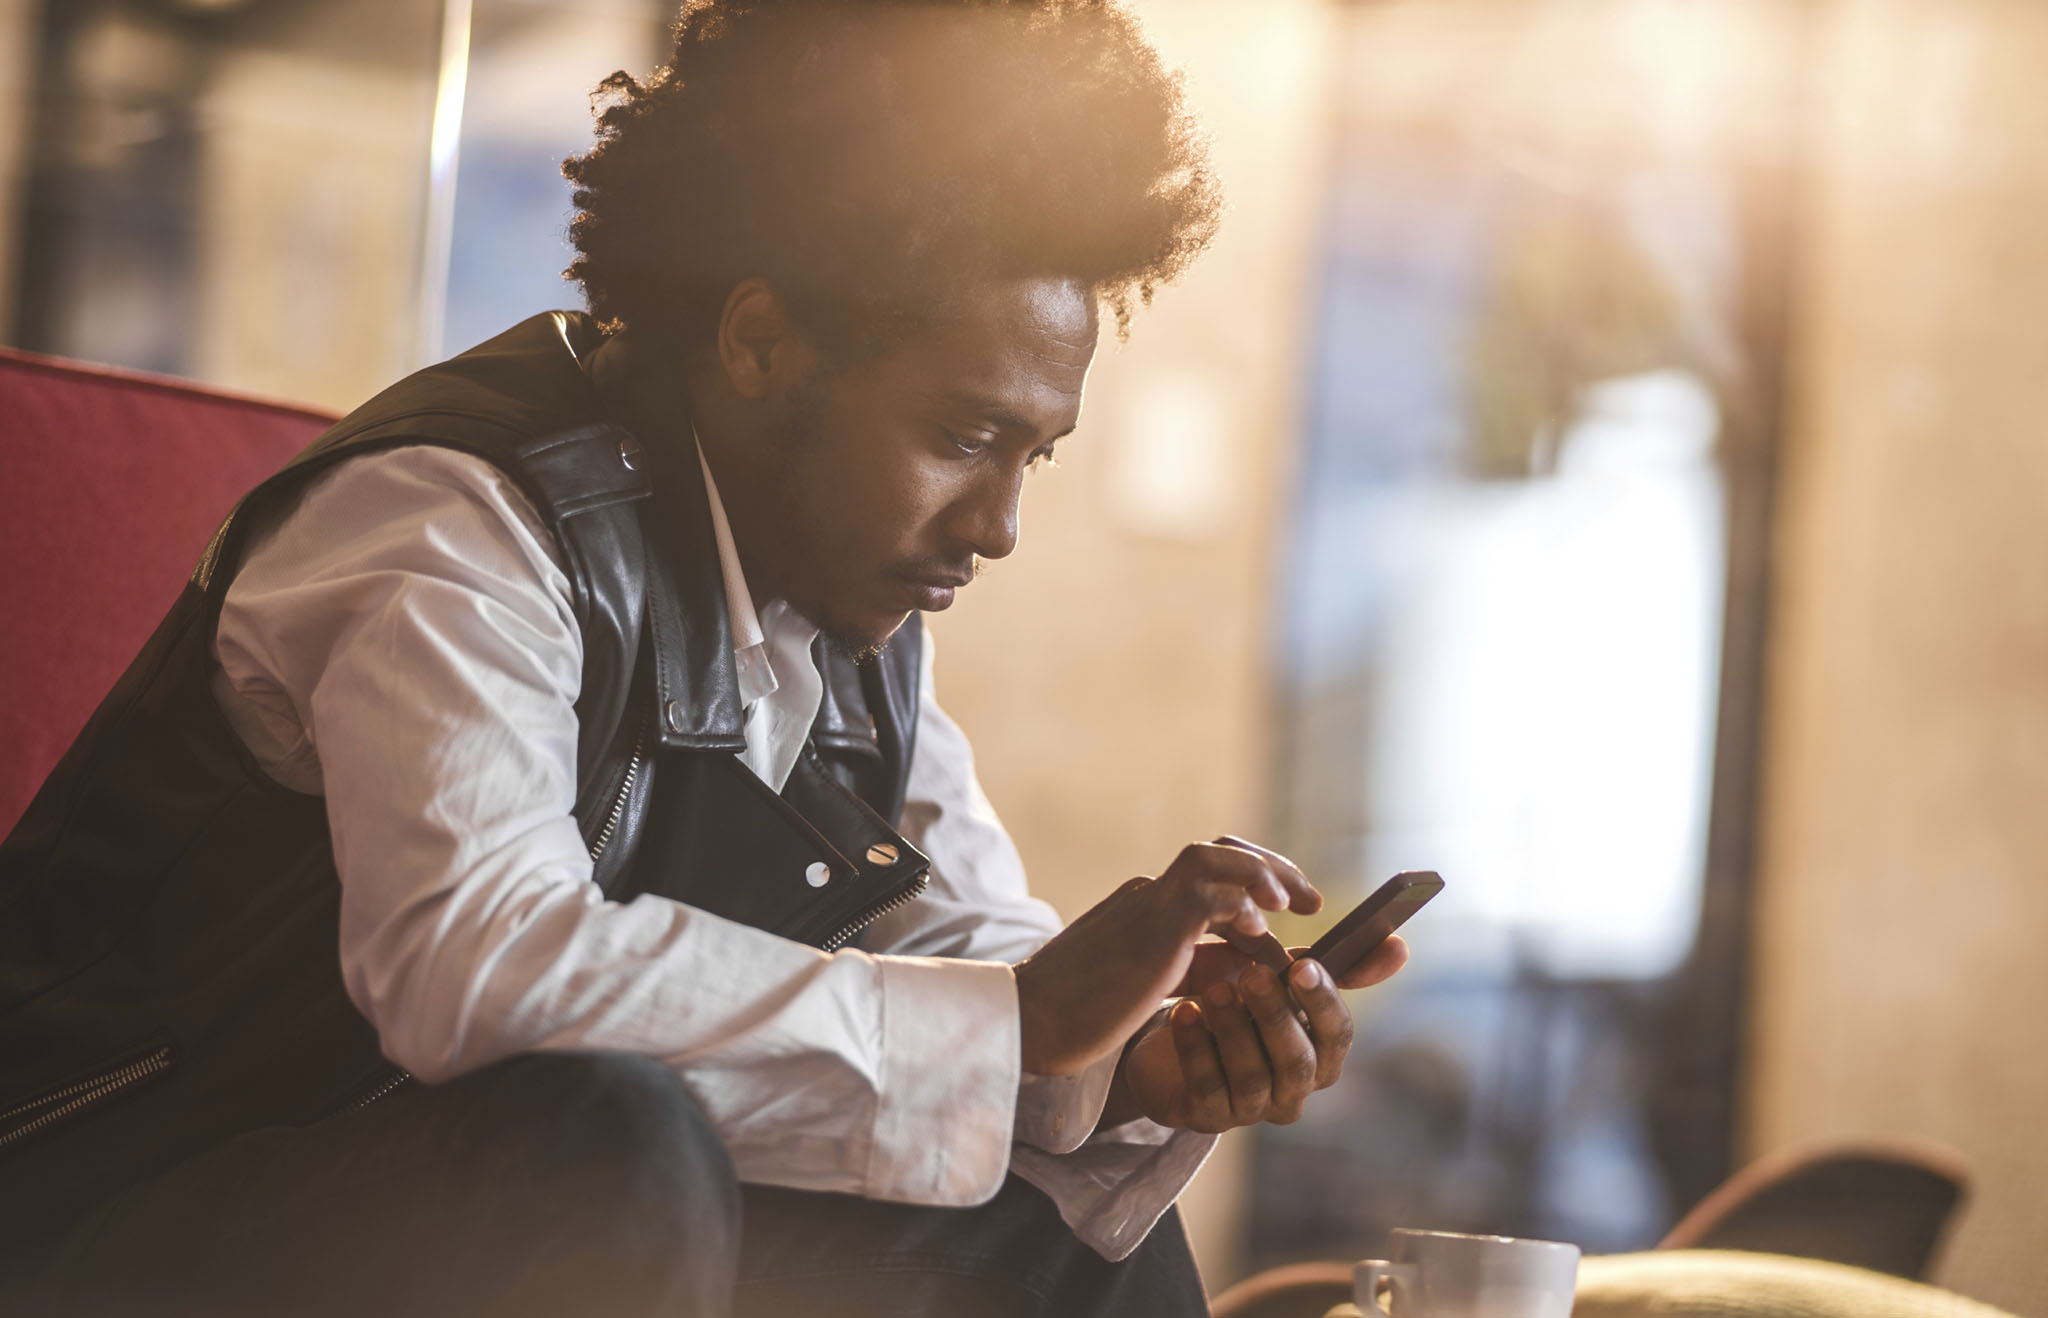 Pensive African American young man using mobile phone on a coffee break and text messaging.